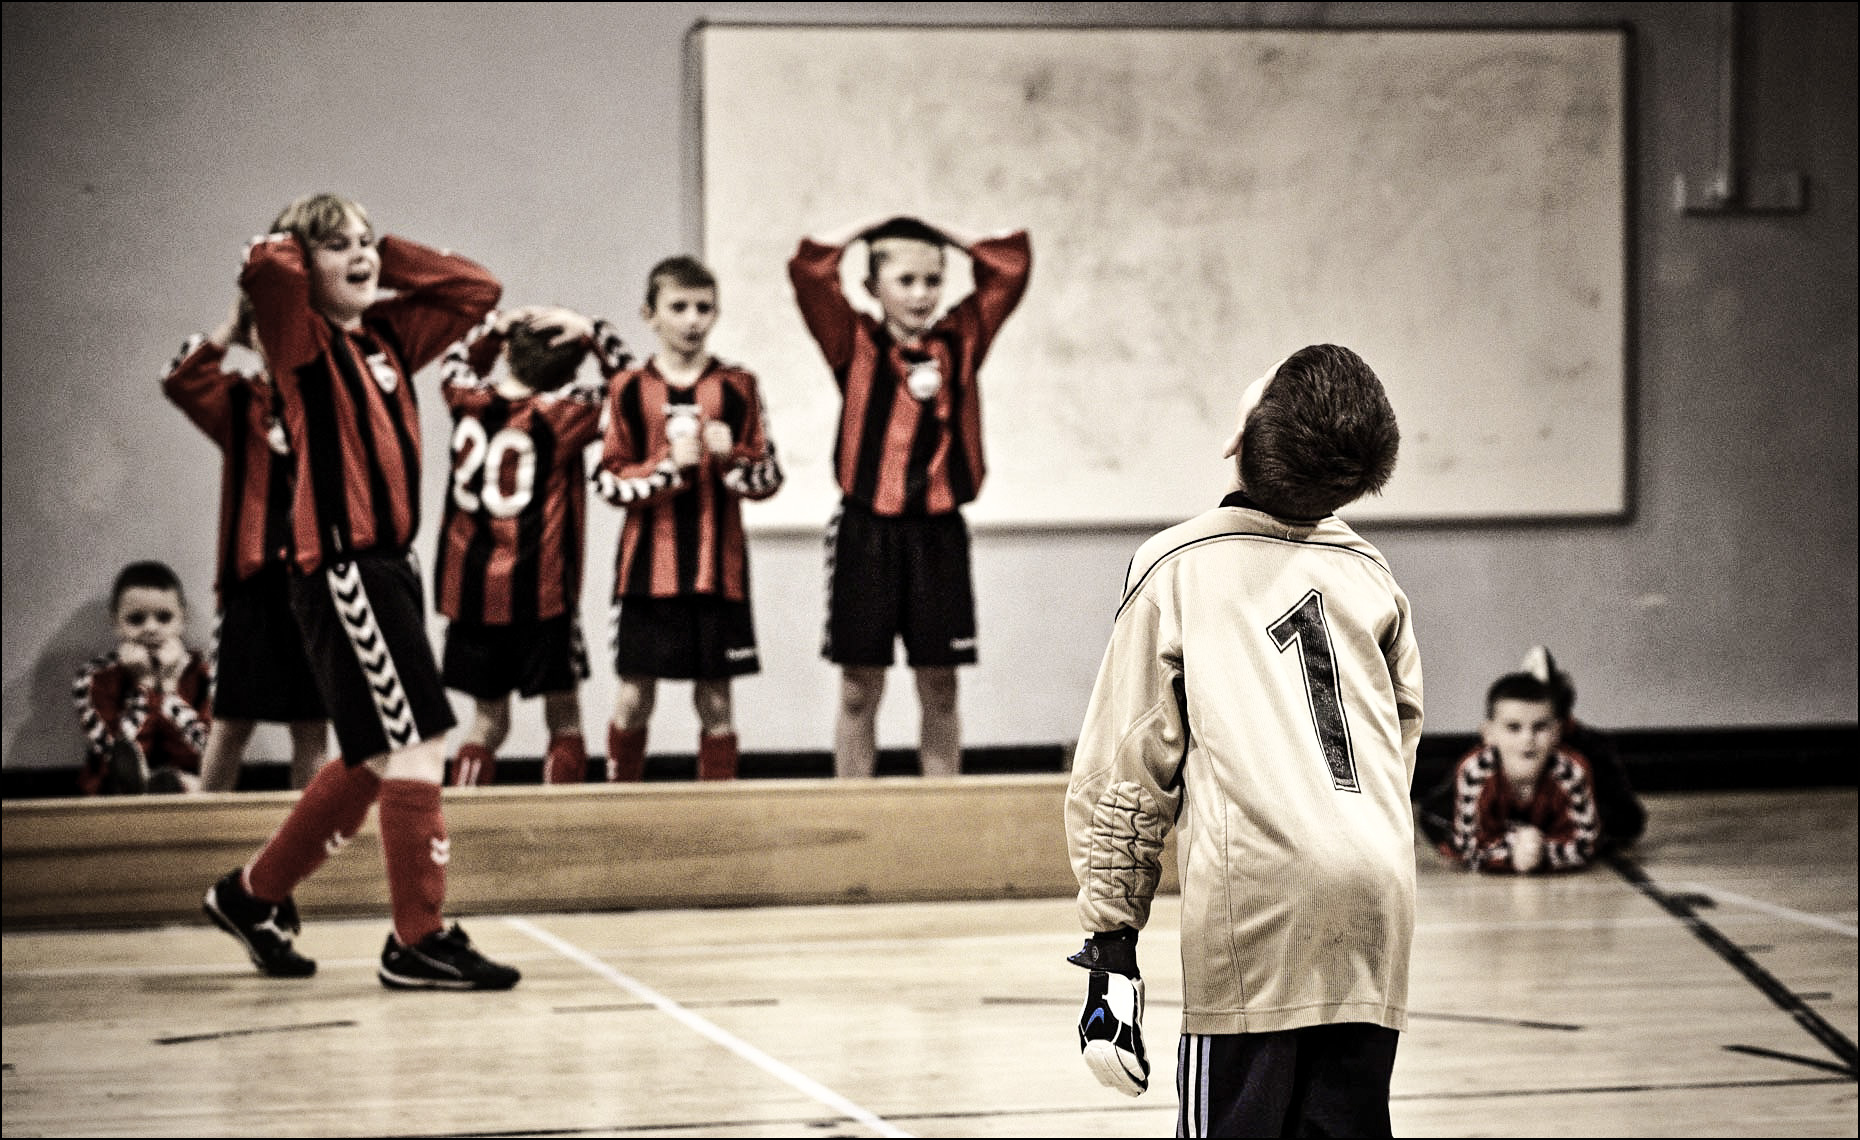 44 youth soccer football charity Scotland  ©Paul Hampton Photographer Glasgow